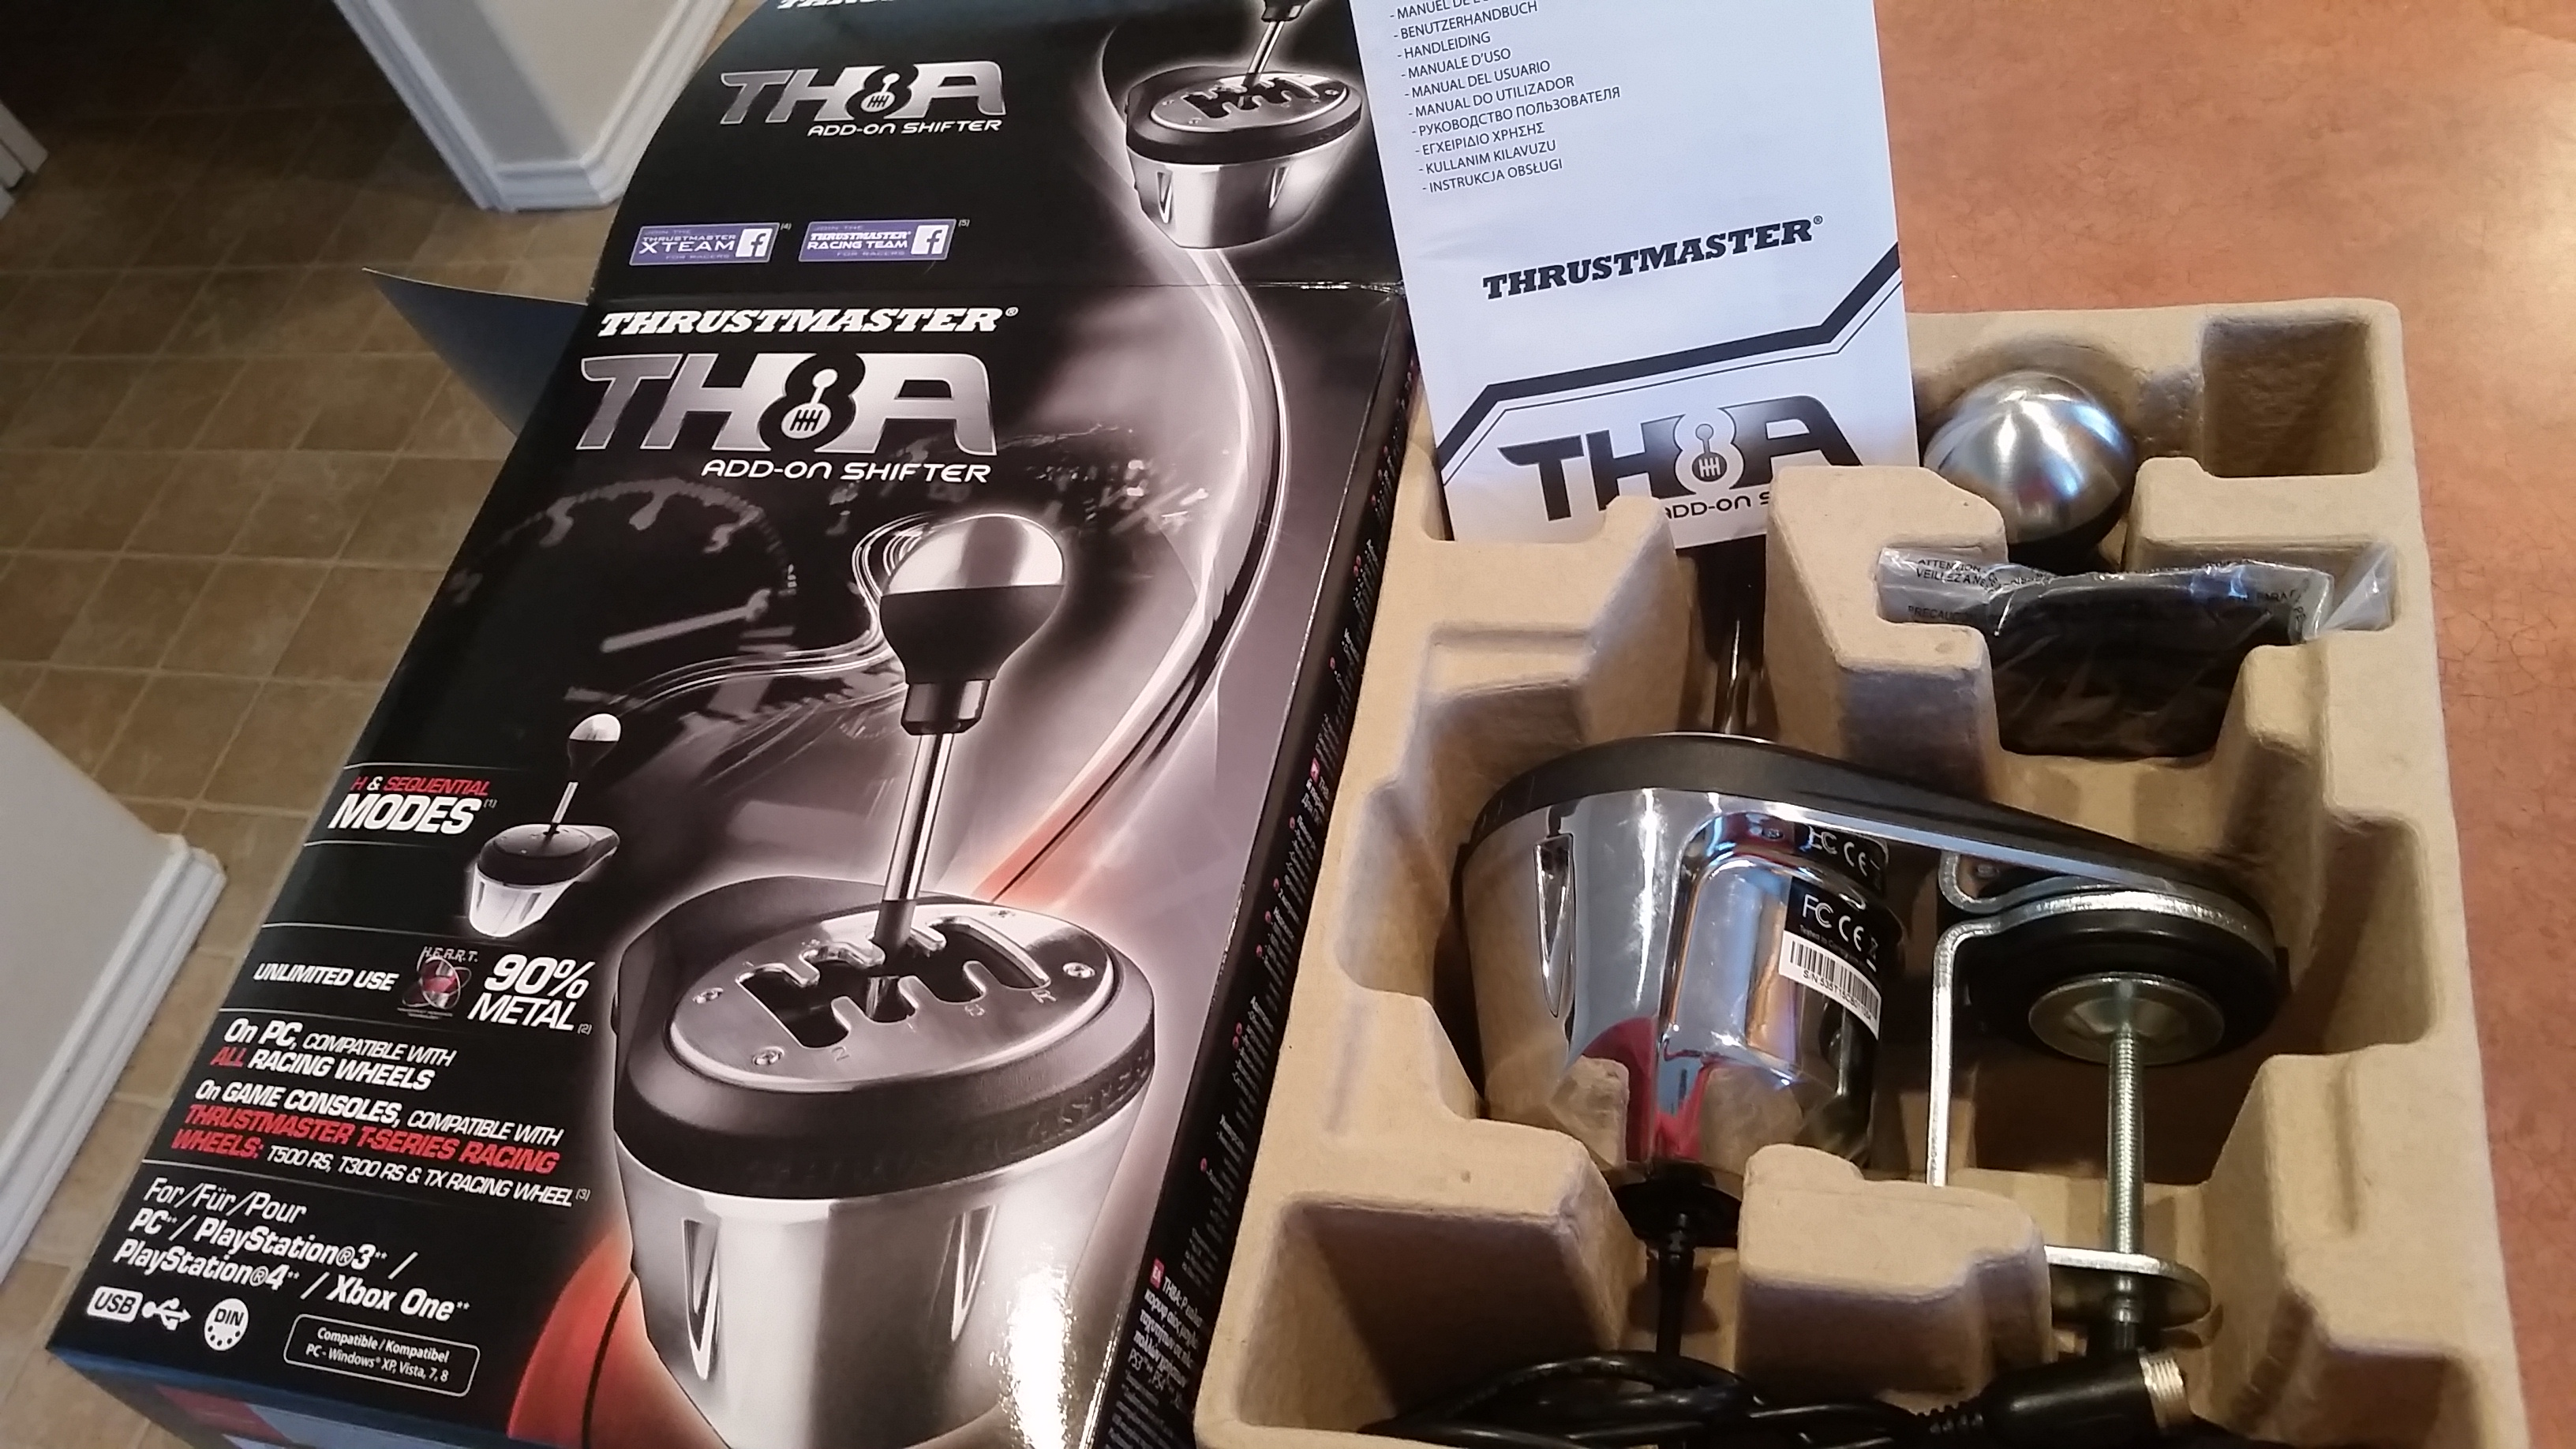 FS) - Thrustmaster TH8A Shifter - USA - Sim Gear - Buy and